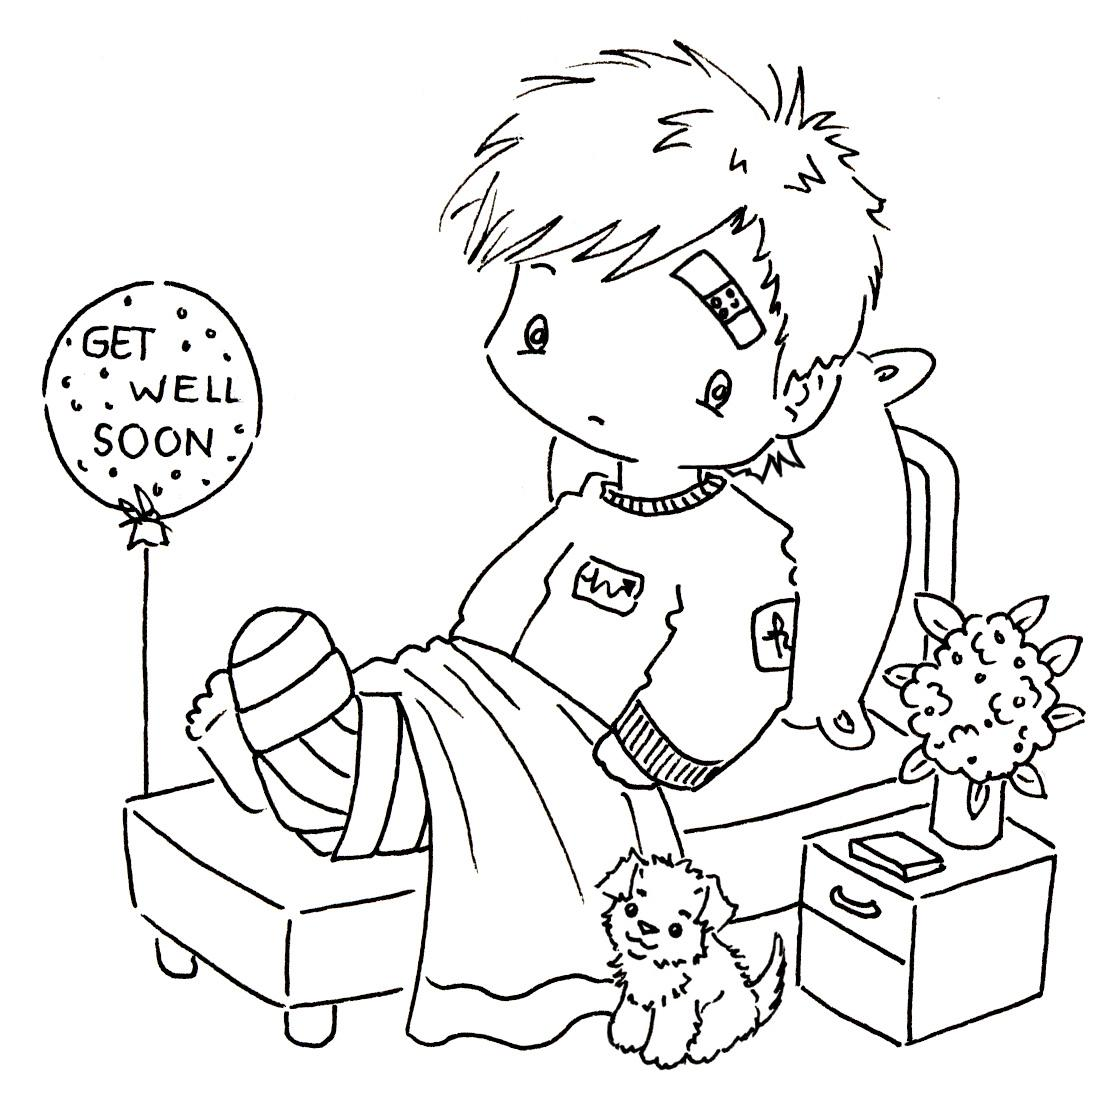 1117x1111 Get Well Soon Coloring Pages